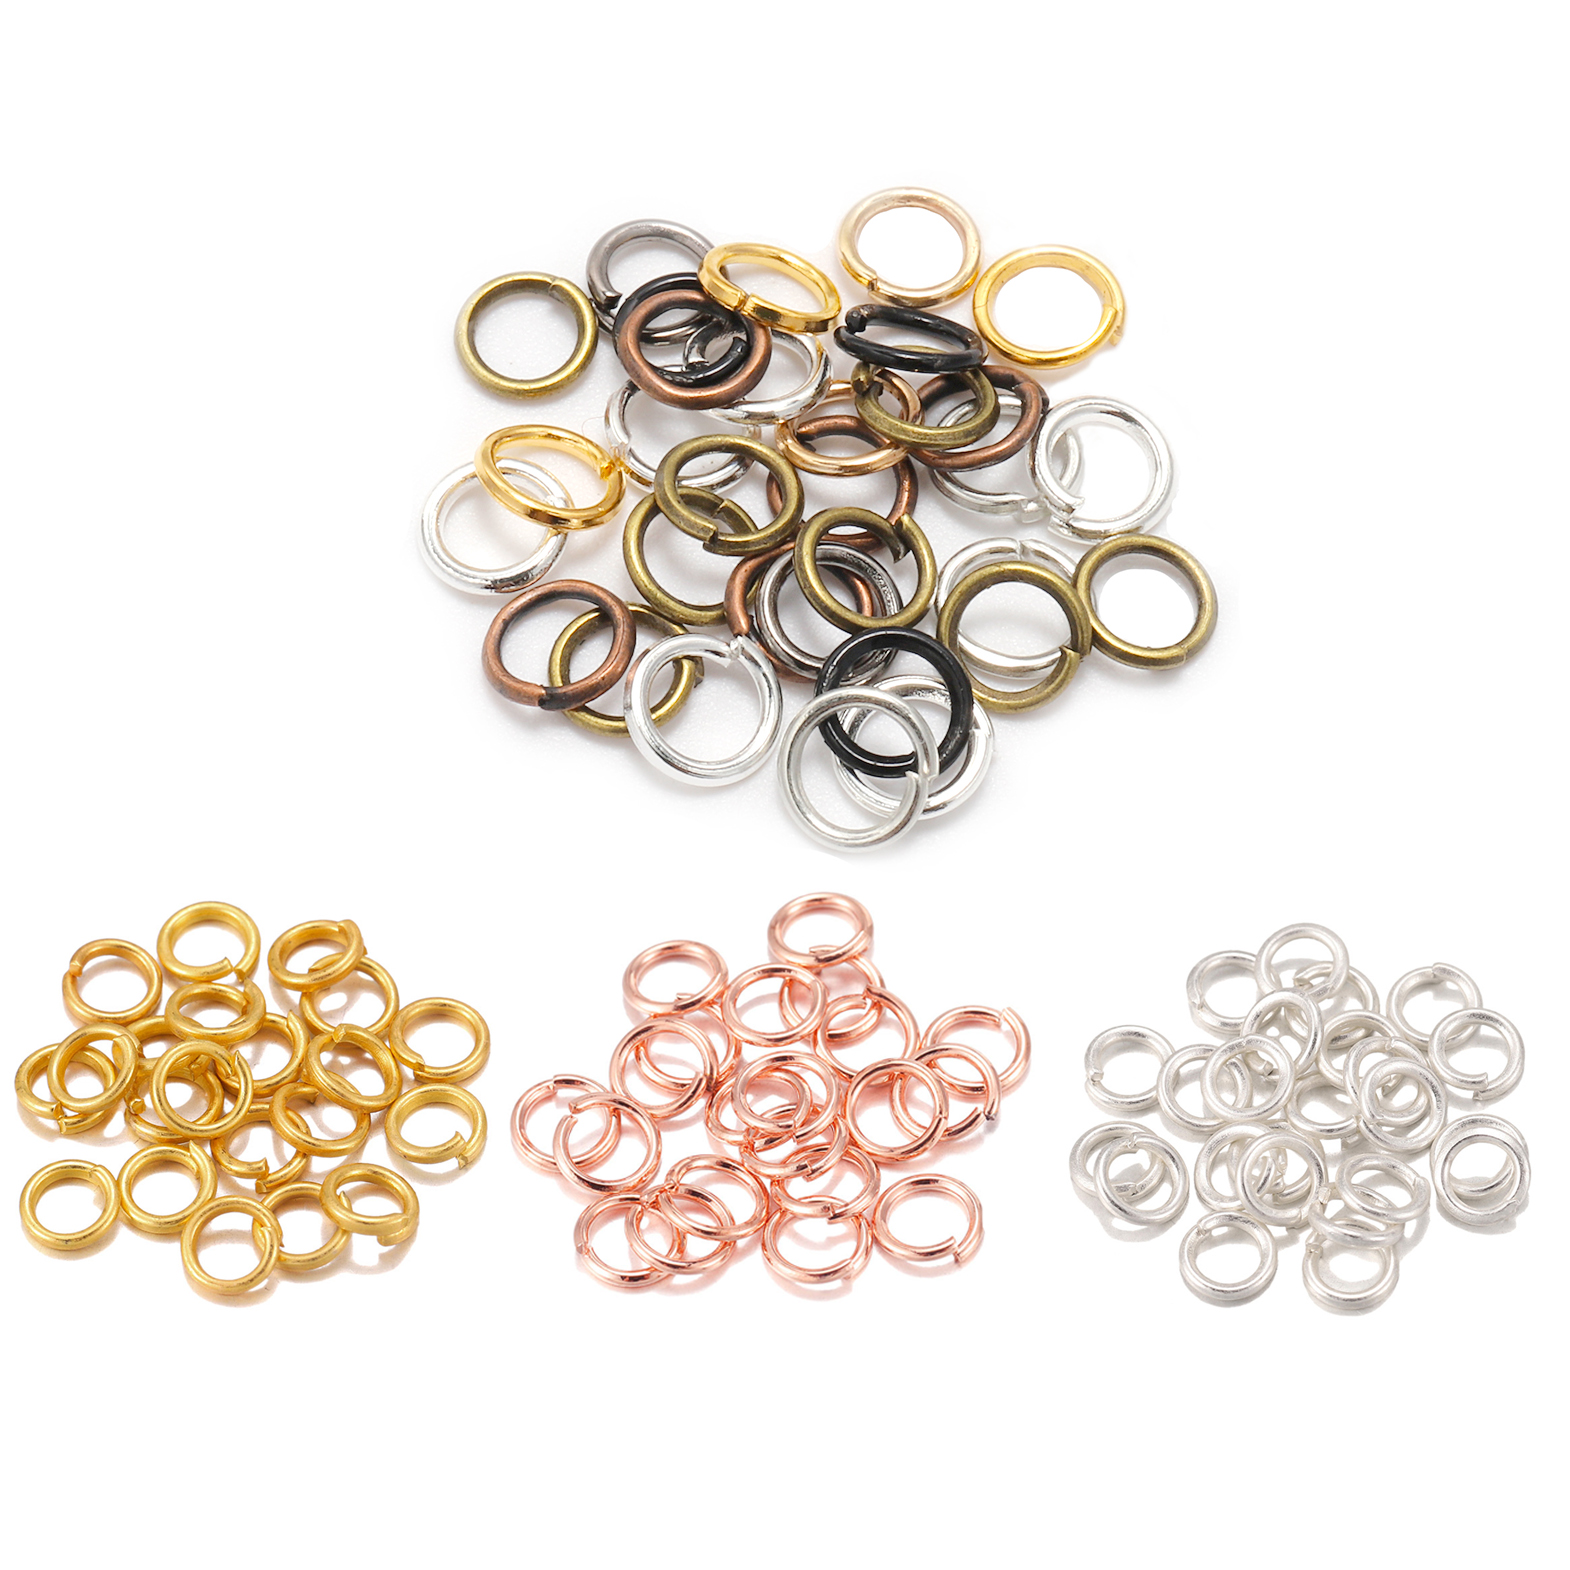 200pcs 3-16mm Gold Rhodium Metal Jump Ring Open Single Loops Split Rings Supplies For DIY Jewelry Handmade Accessories